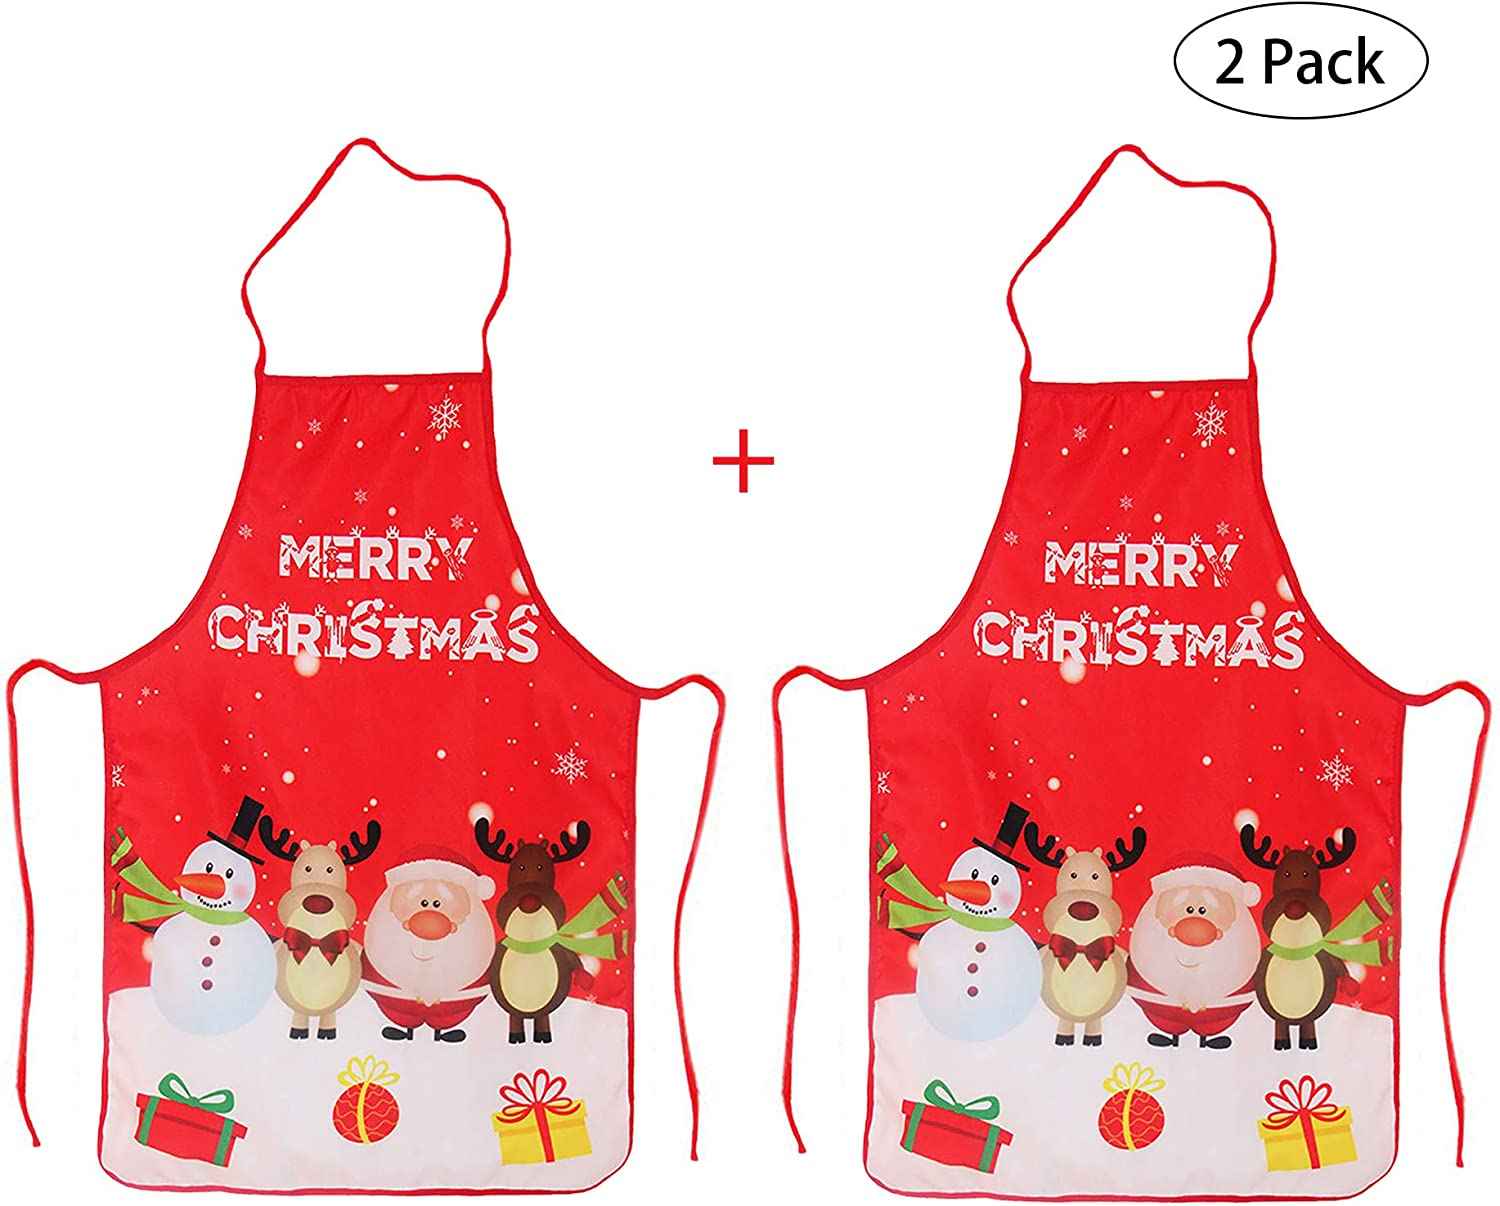 LeeLoon 2 Pack Chistmas Apron  Holiday Kitchen Apron Christmas Santa Claus Elk Snowman Style Decoration Apron for Christmas Dinner Party Cooking Baking Crafting House Cleaning Kitchen